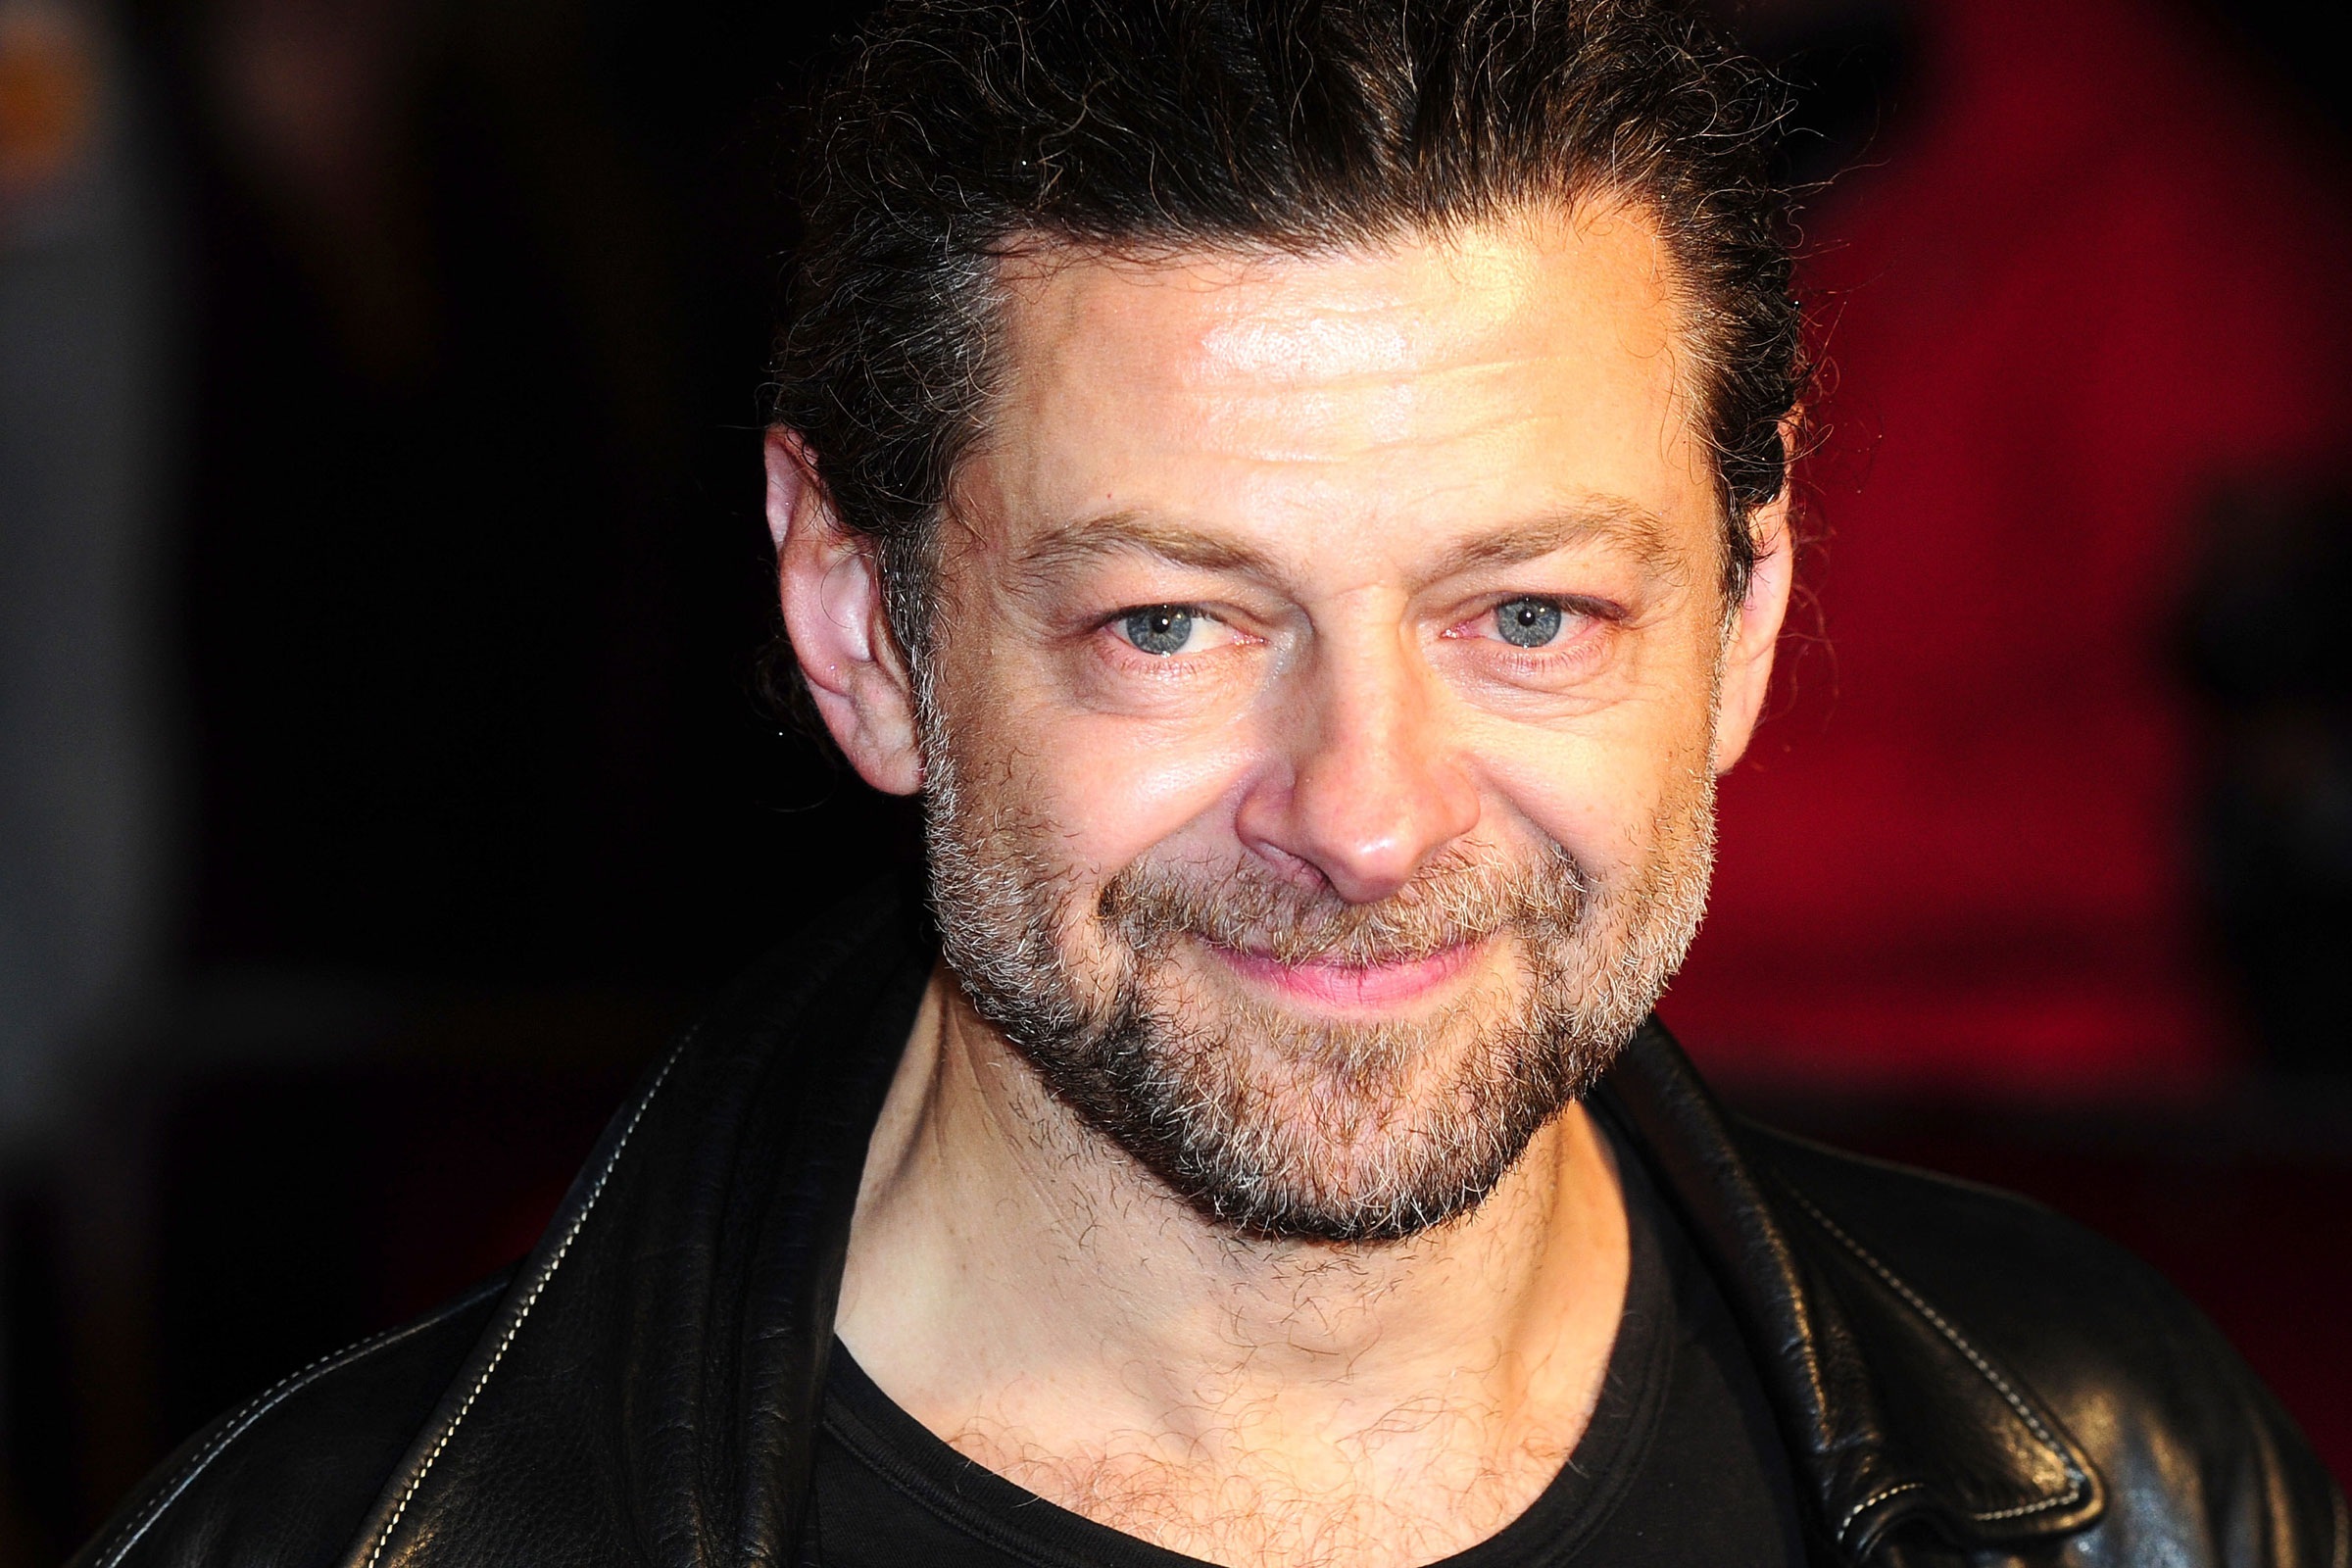 2400x1600 - Andy Serkis Wallpapers 11